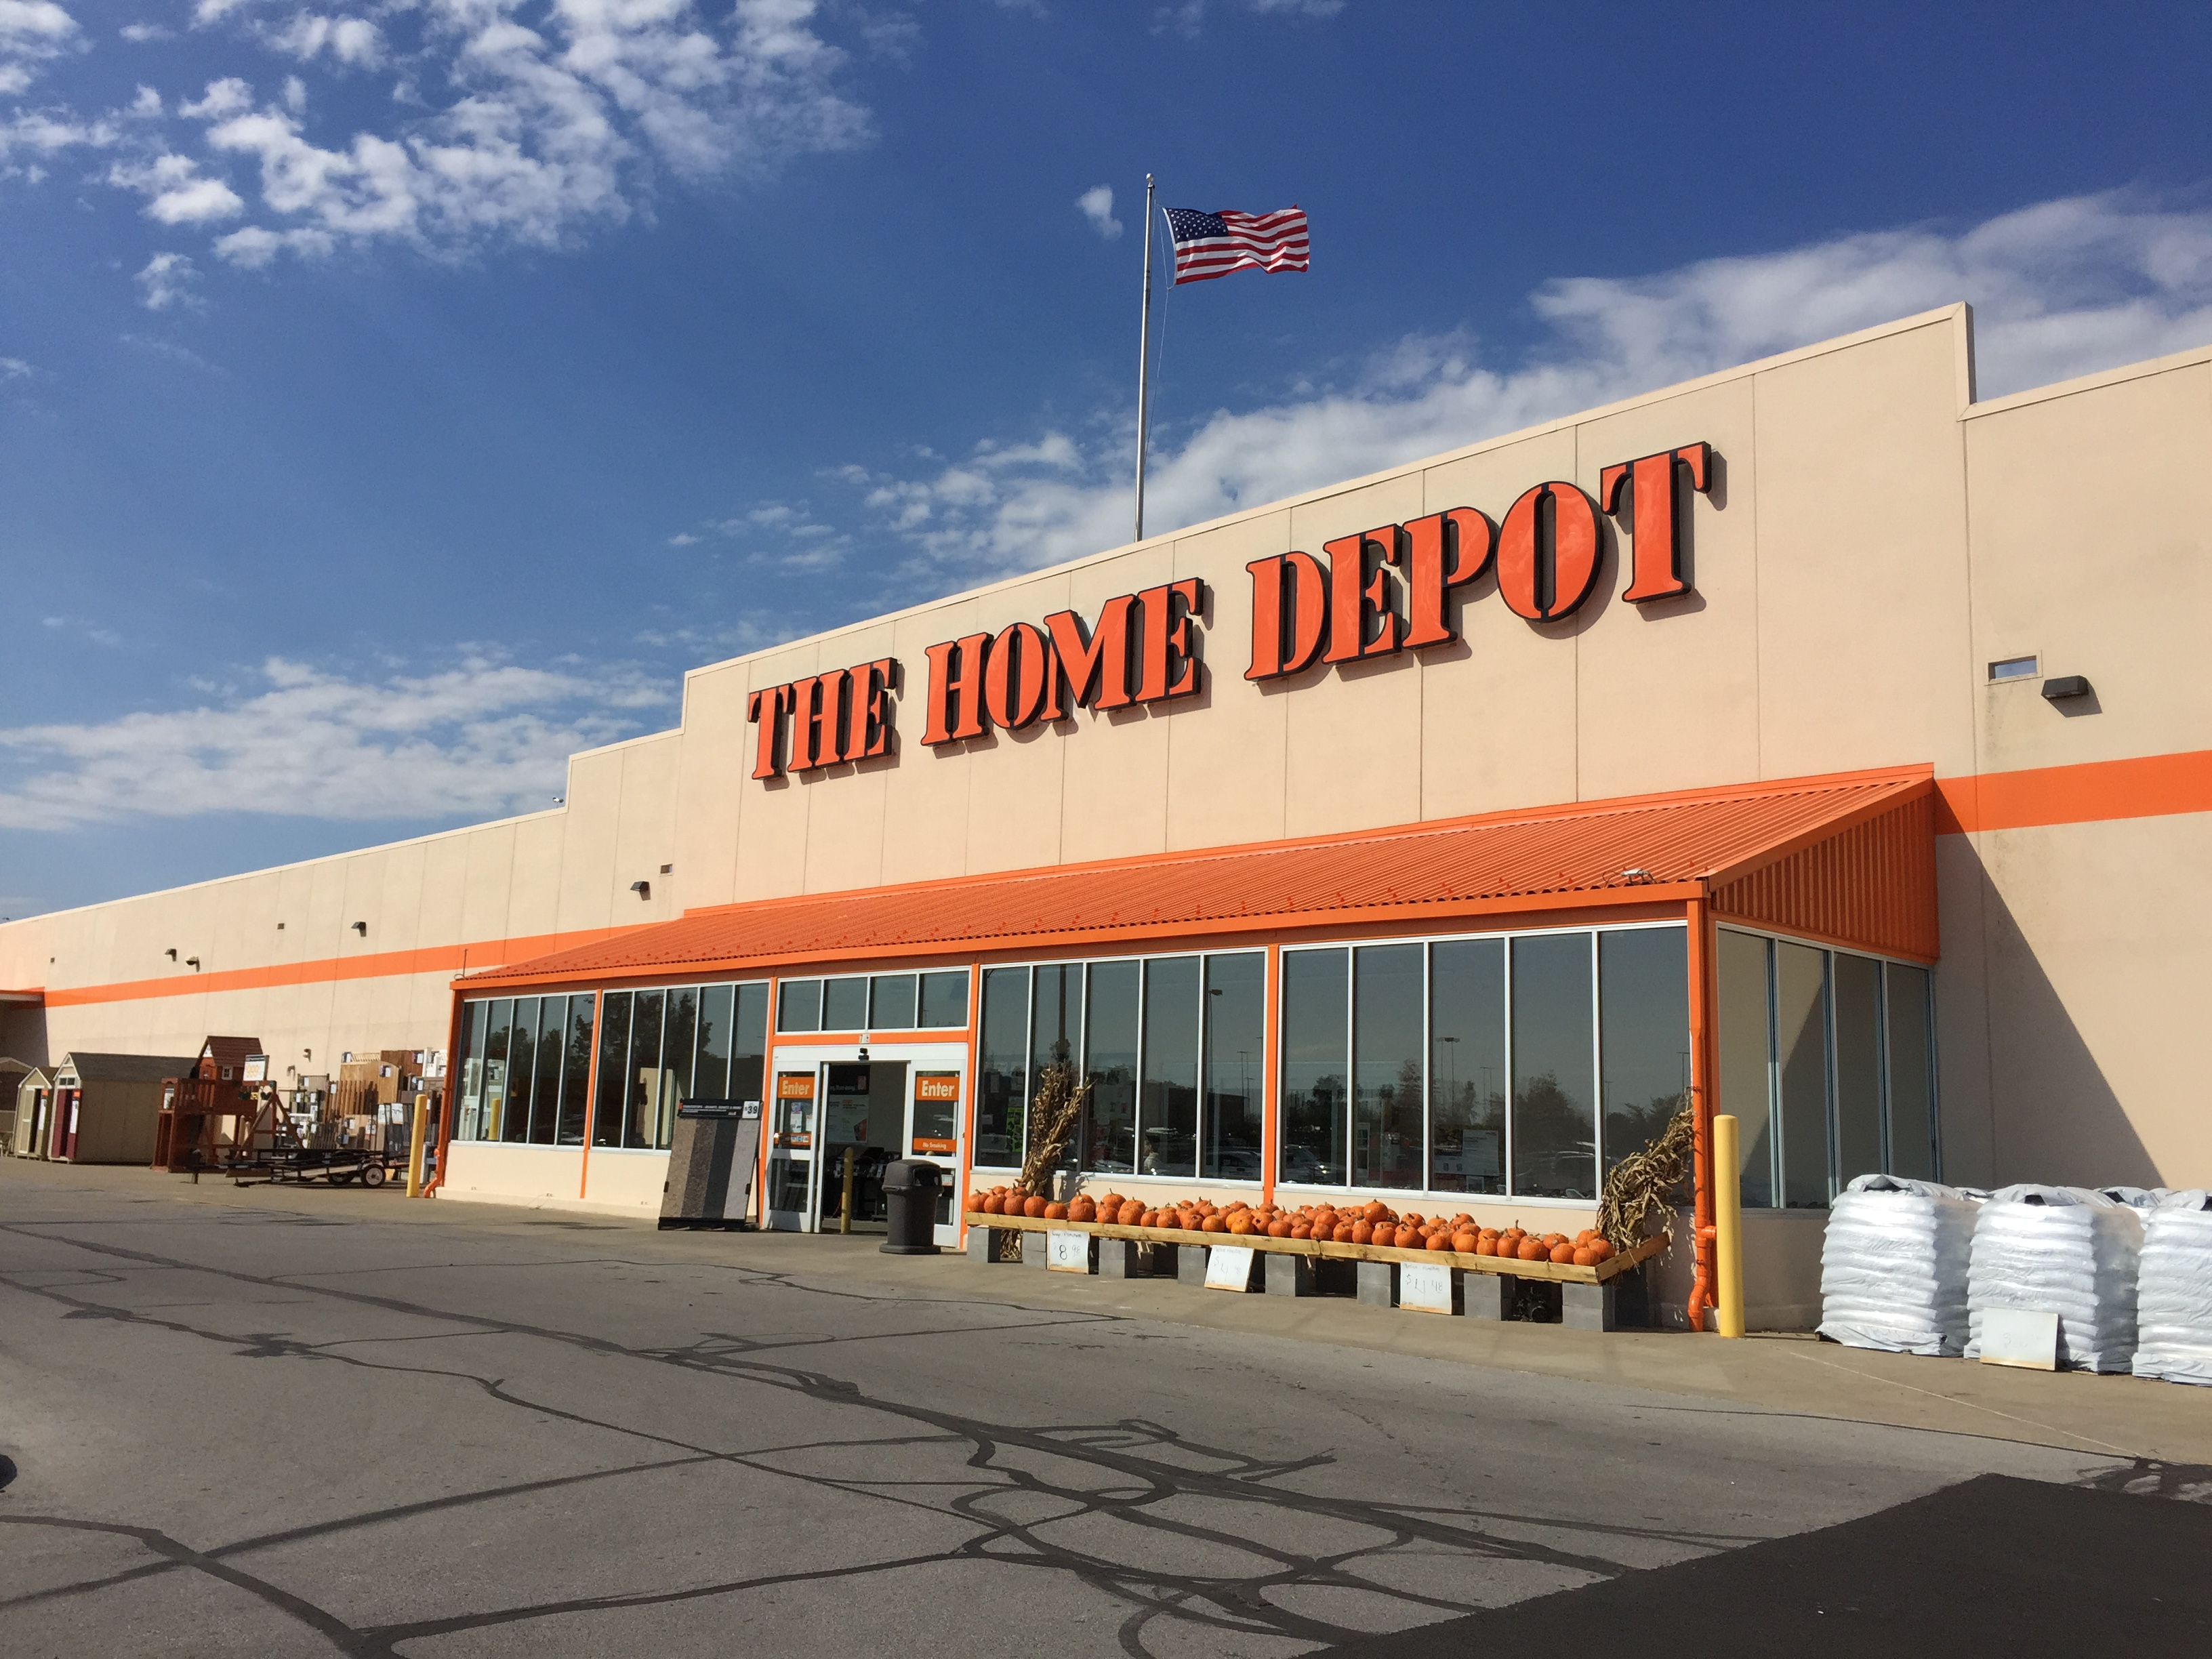 The home depot in sandusky oh whitepages for Depot hamburg